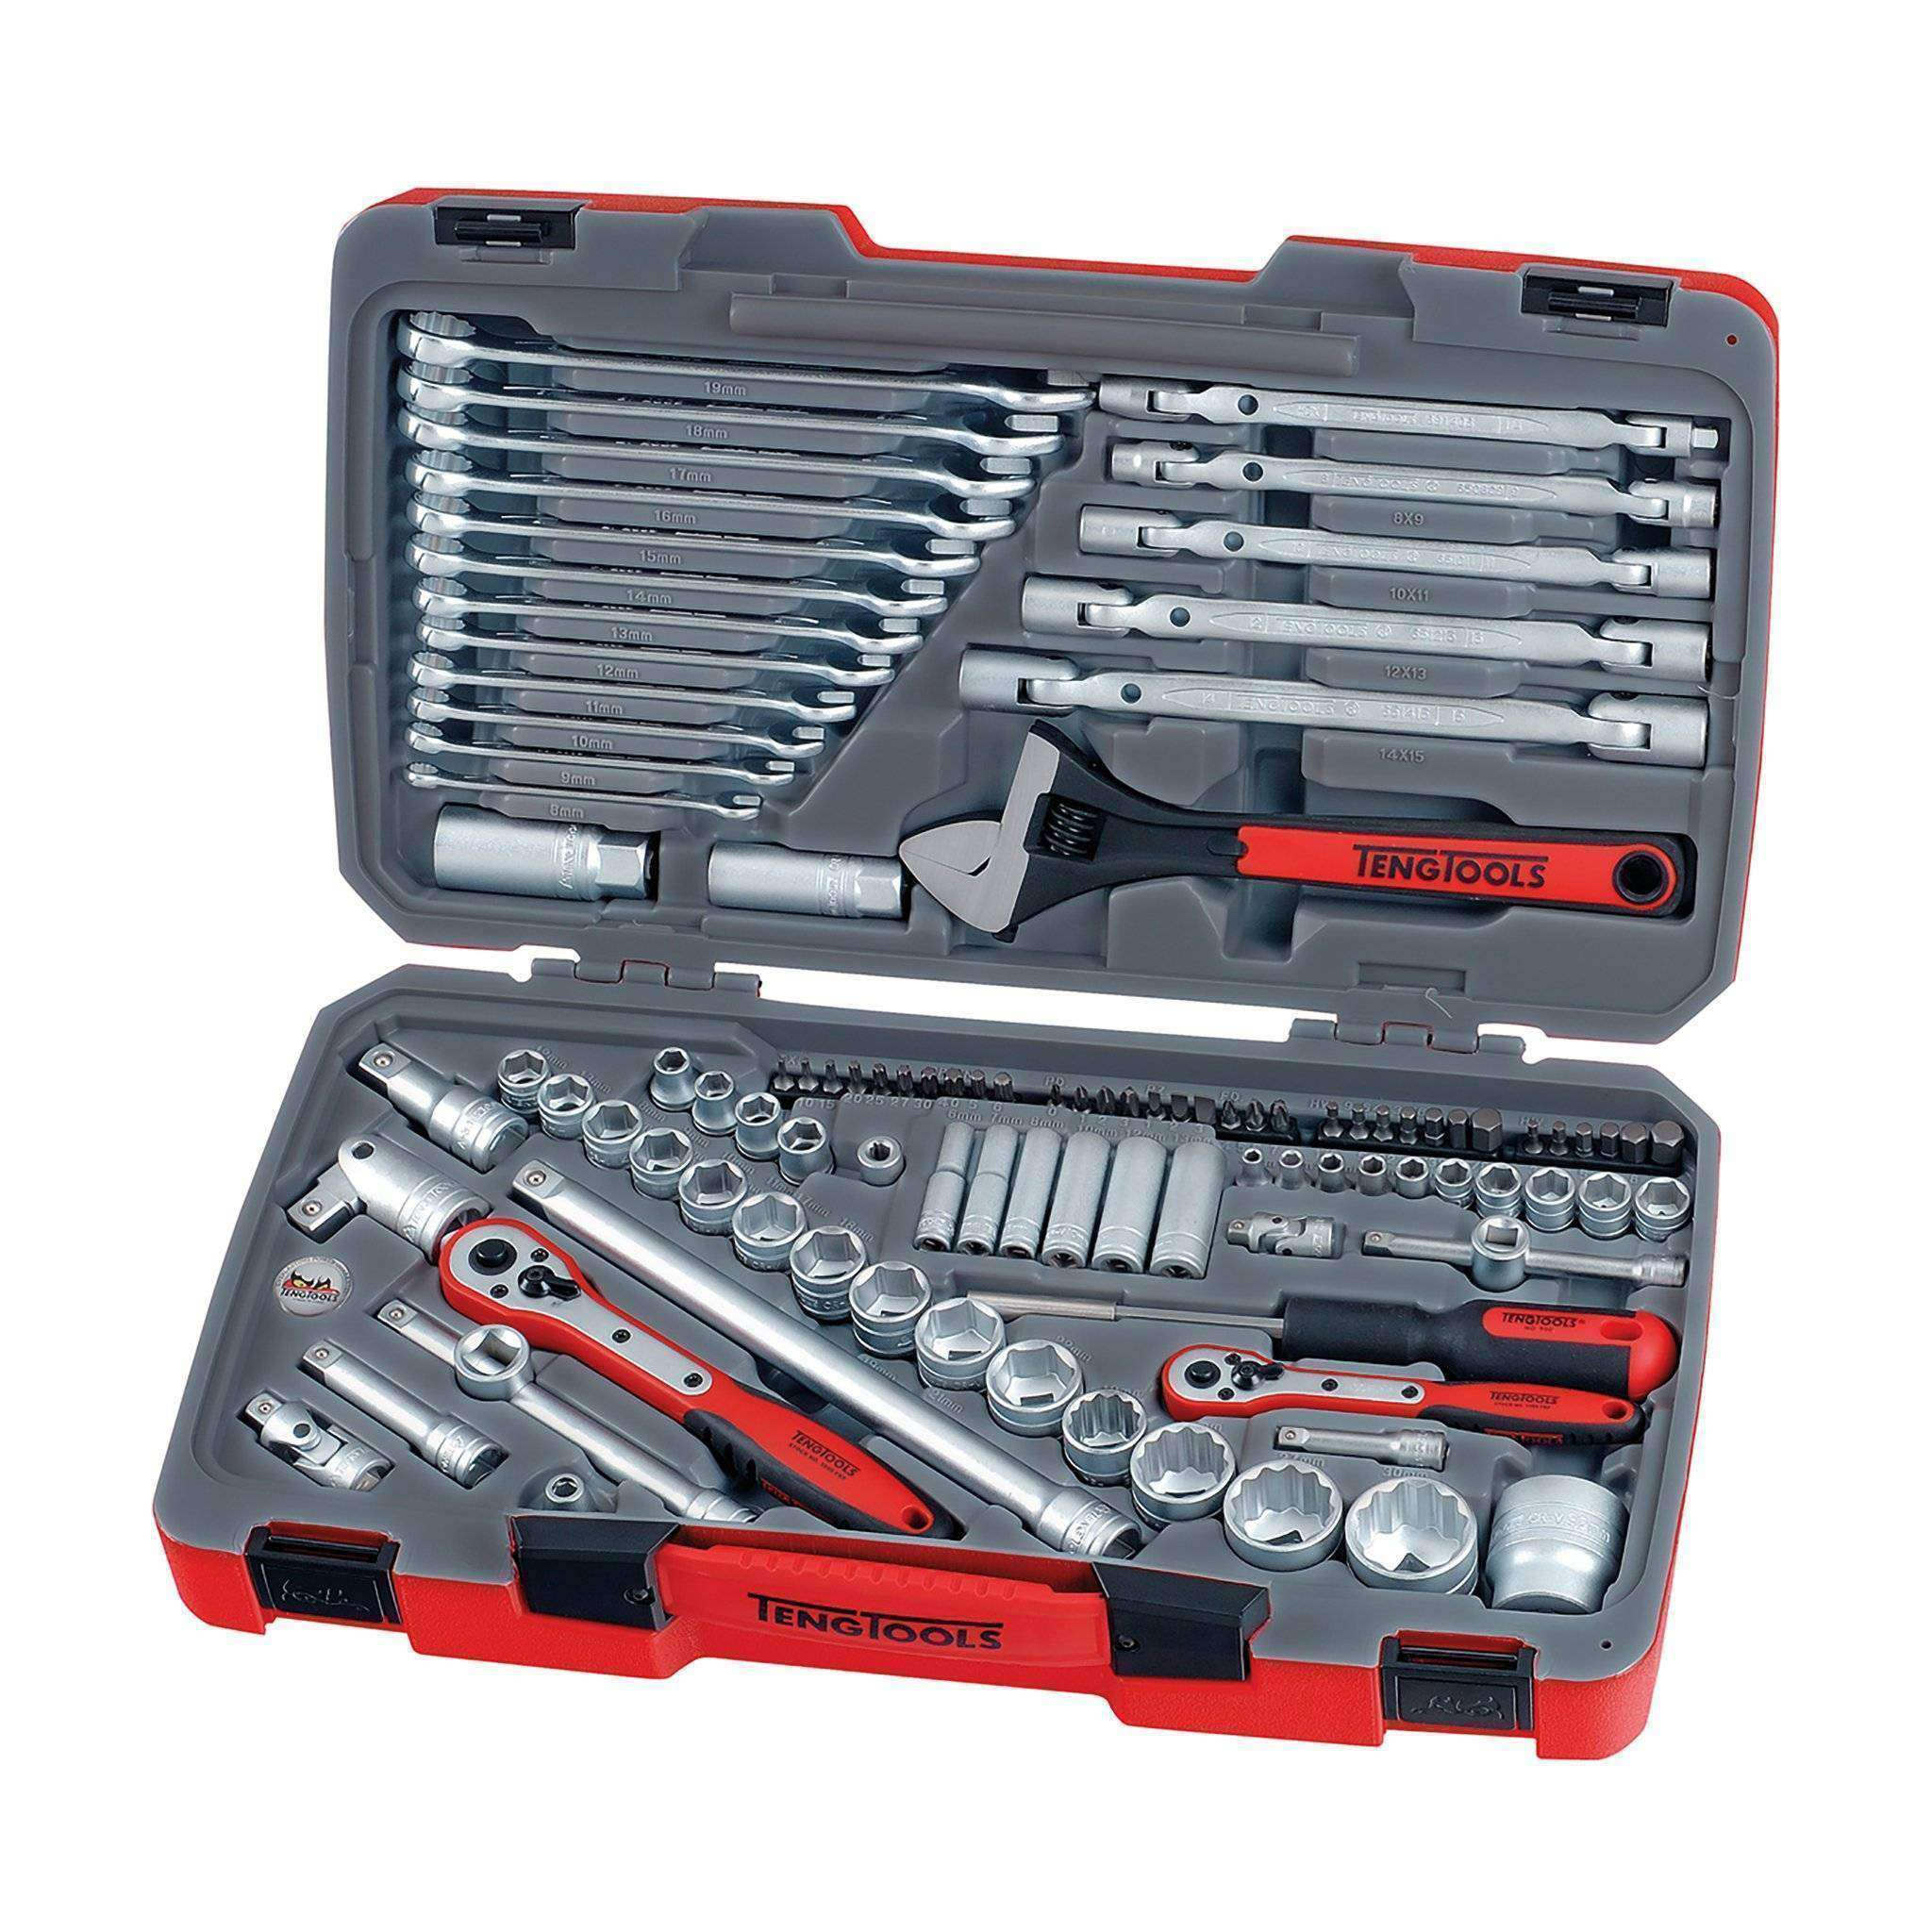 Teng Tools - 106 Piece Mixed Drive Socket Set 1/4, 3/8, 1/2 Inch - TEN-O-TM106 - Teng Tools USA